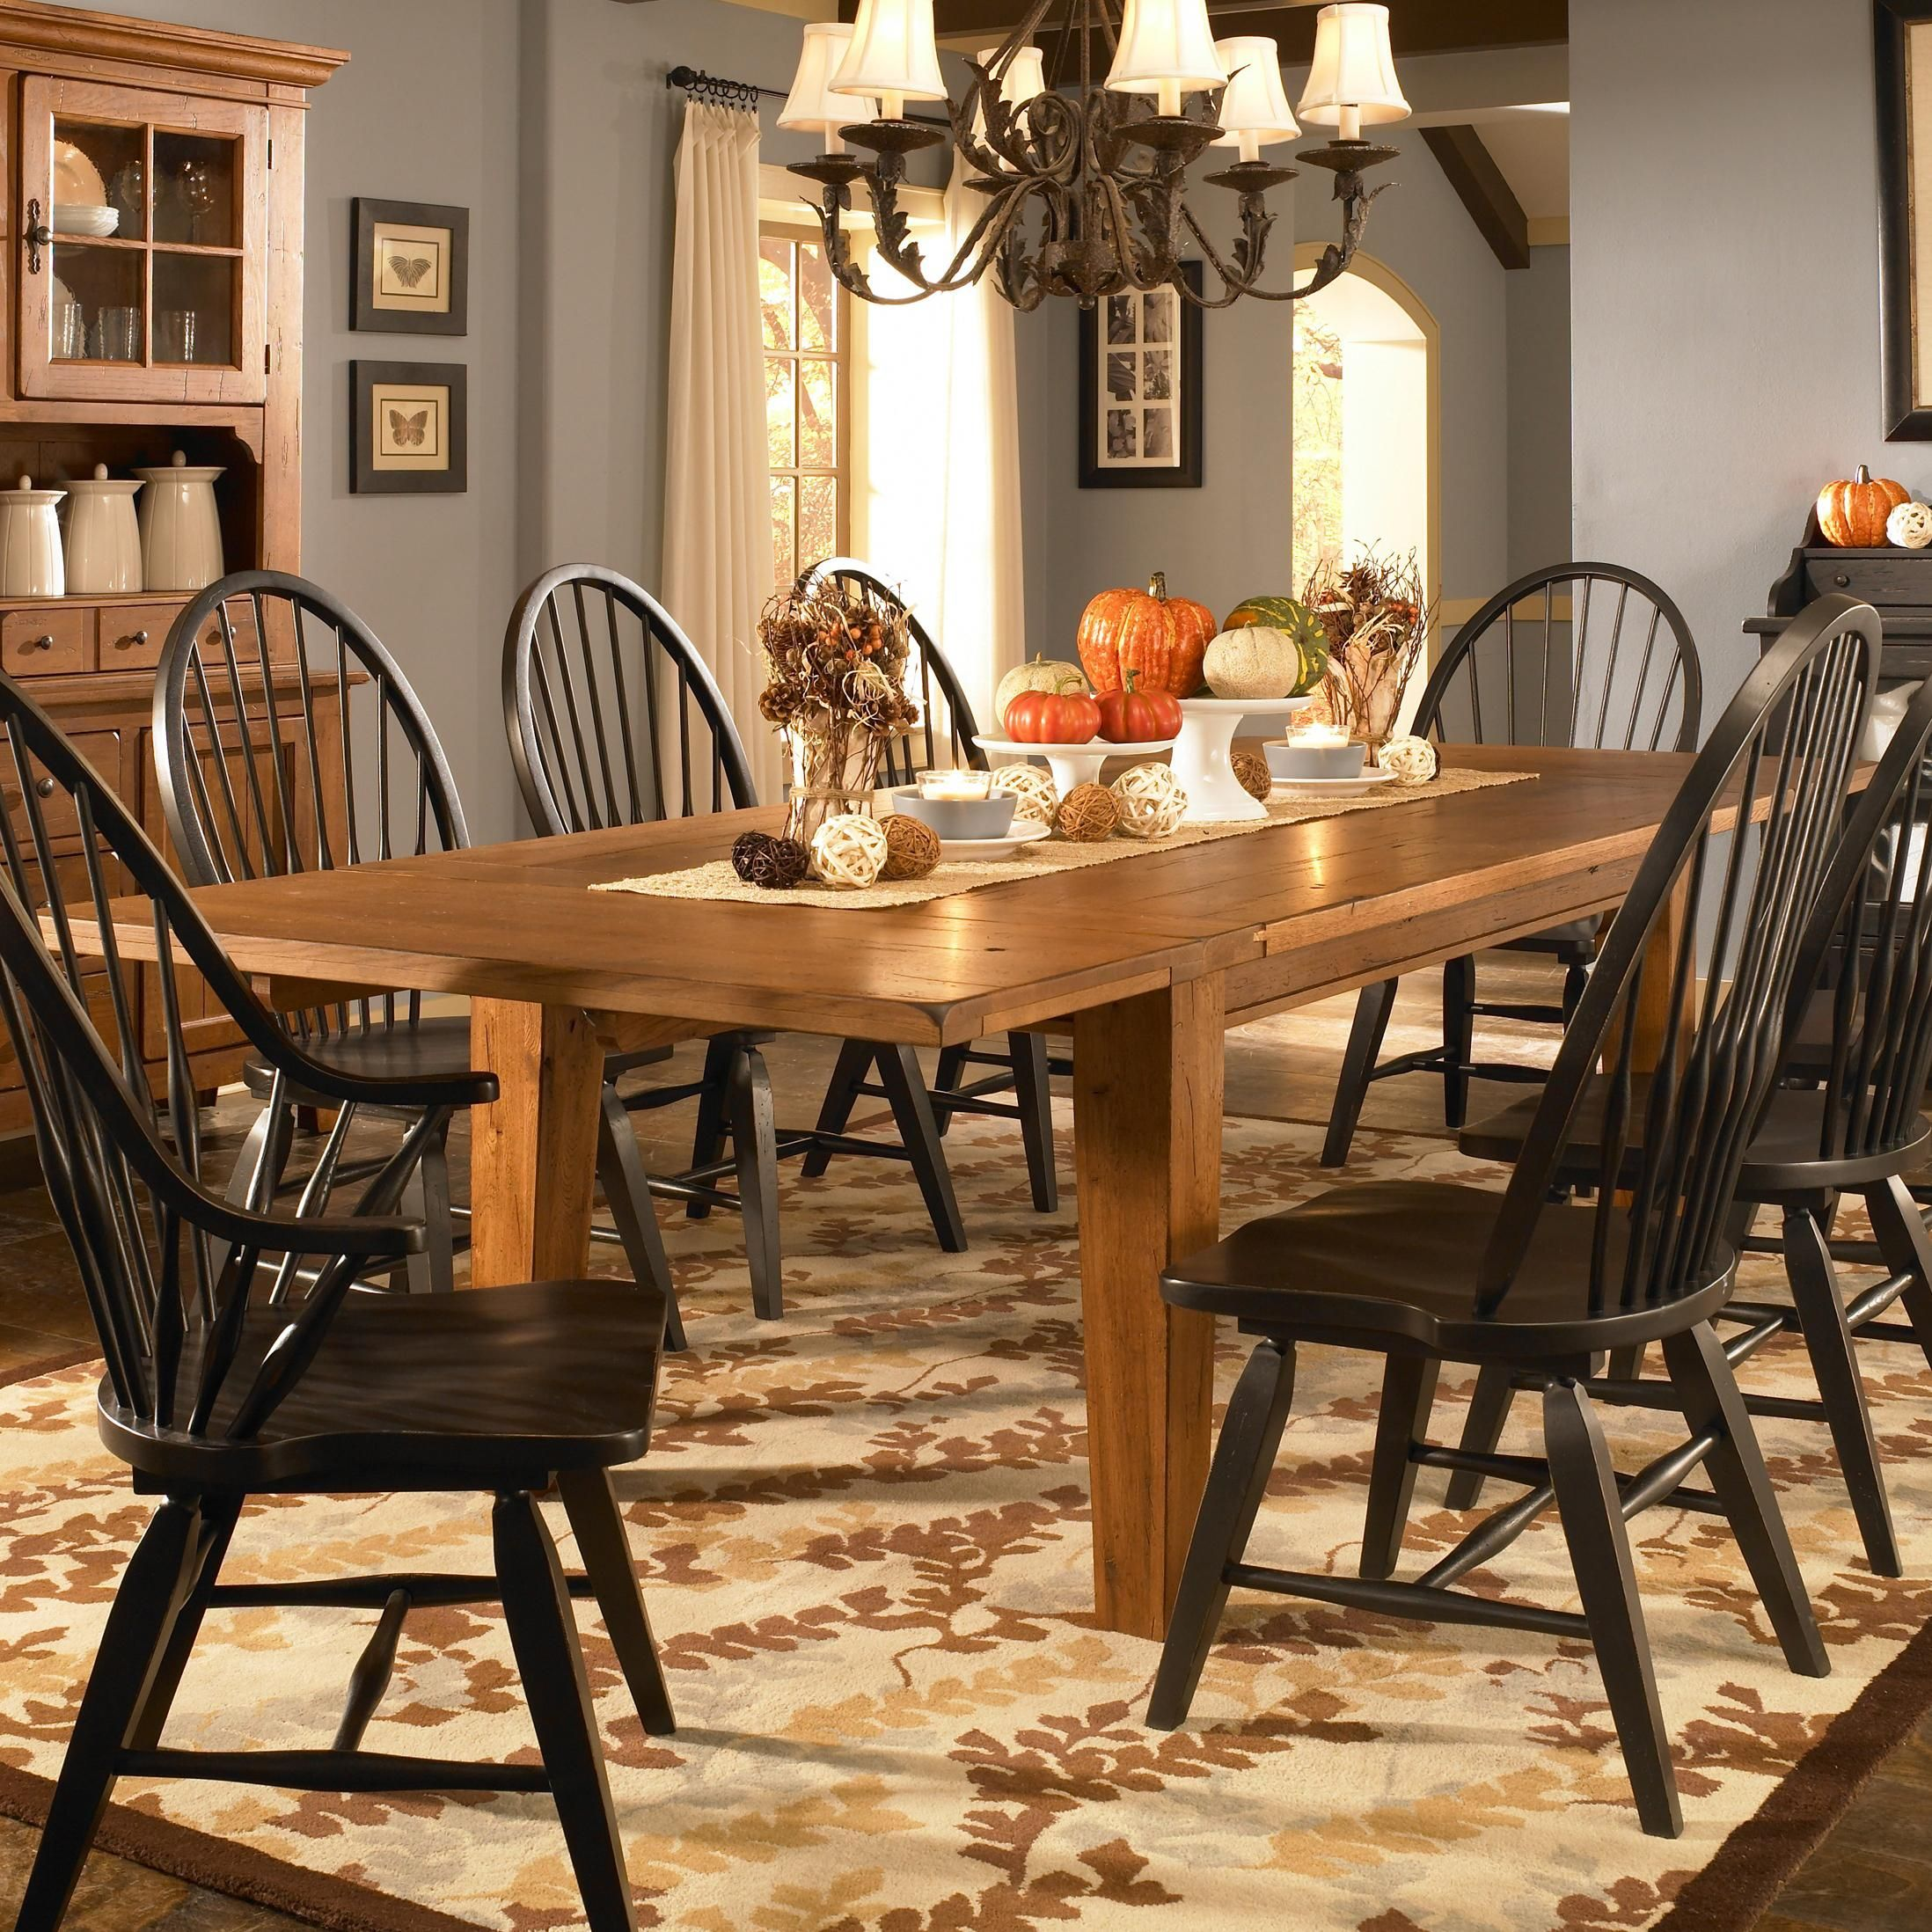 Charmant Attic Heirlooms Leg Dining Table By Broyhill Furniture